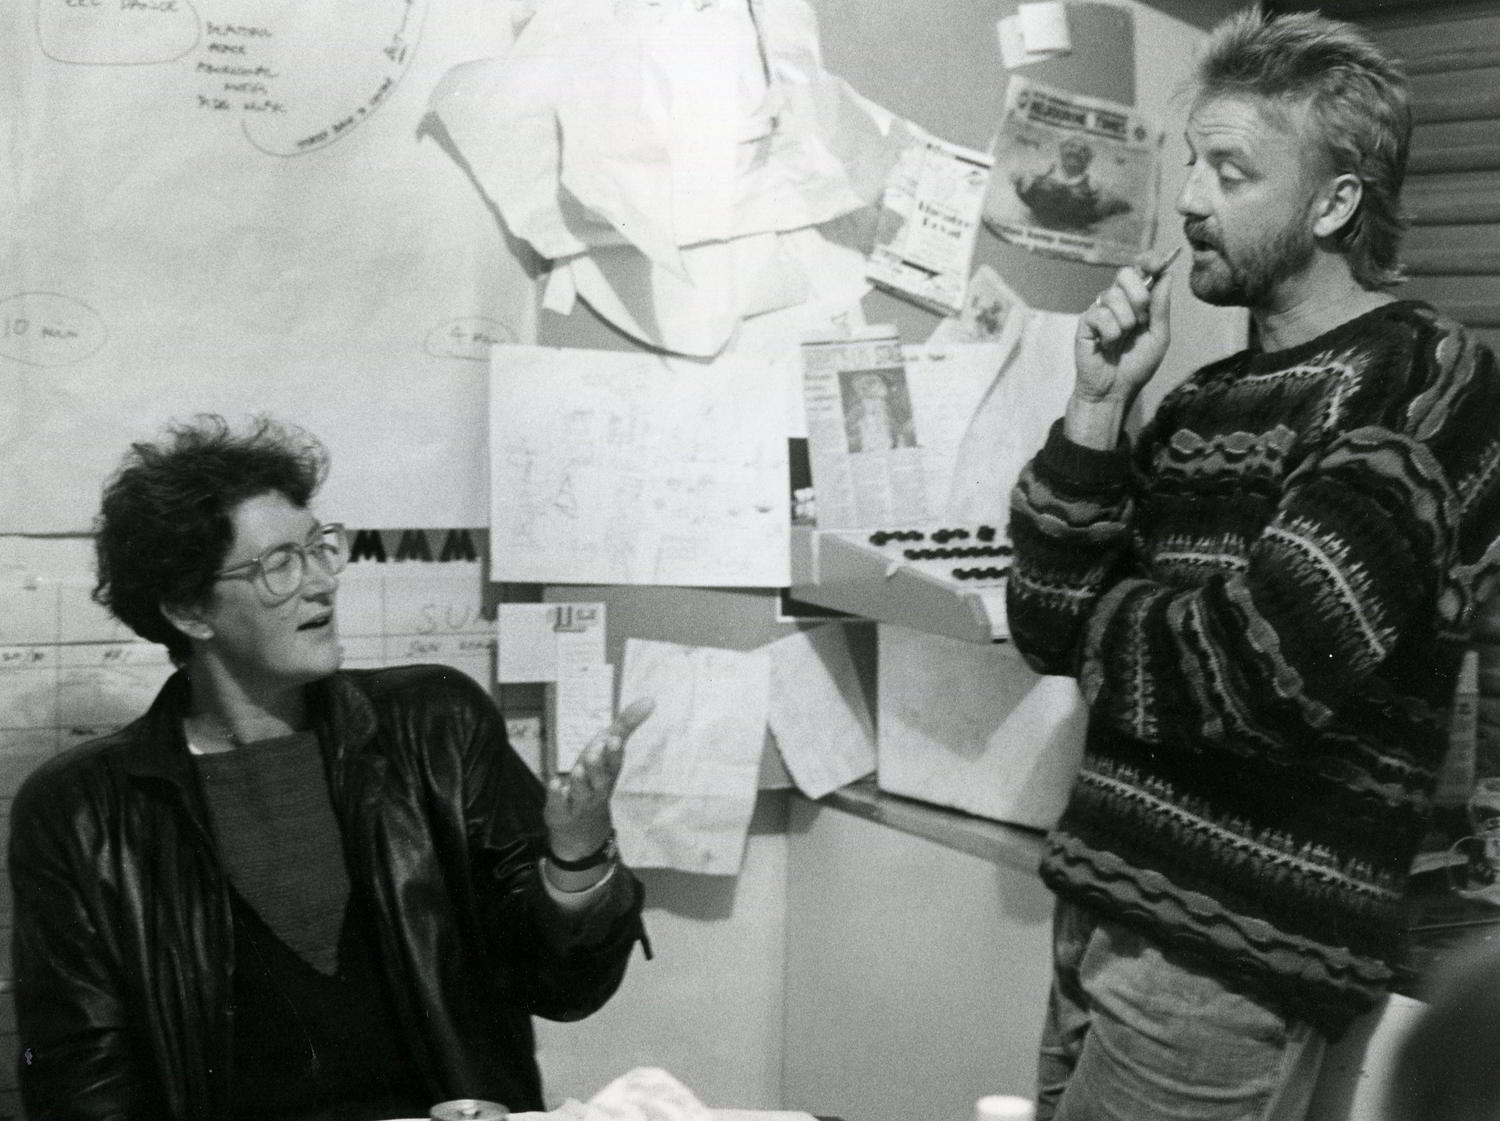 Philip lethlean and Trina Parker at Handspan Theatre in discussion at the office desk